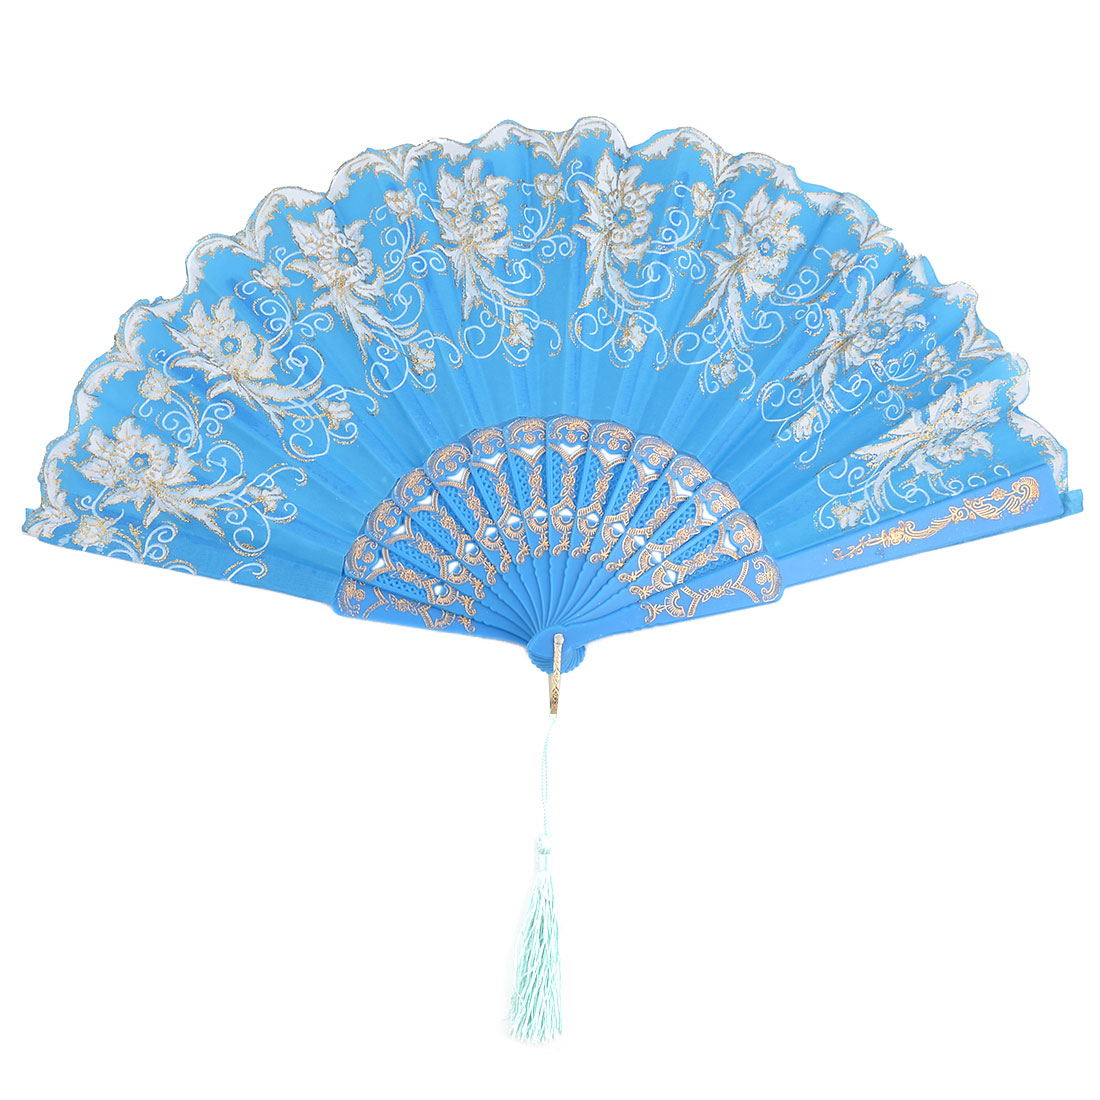 Gift Plastic Frame Flower Pattern Wall Hanging Decoration Handheld Folding Fan Blue